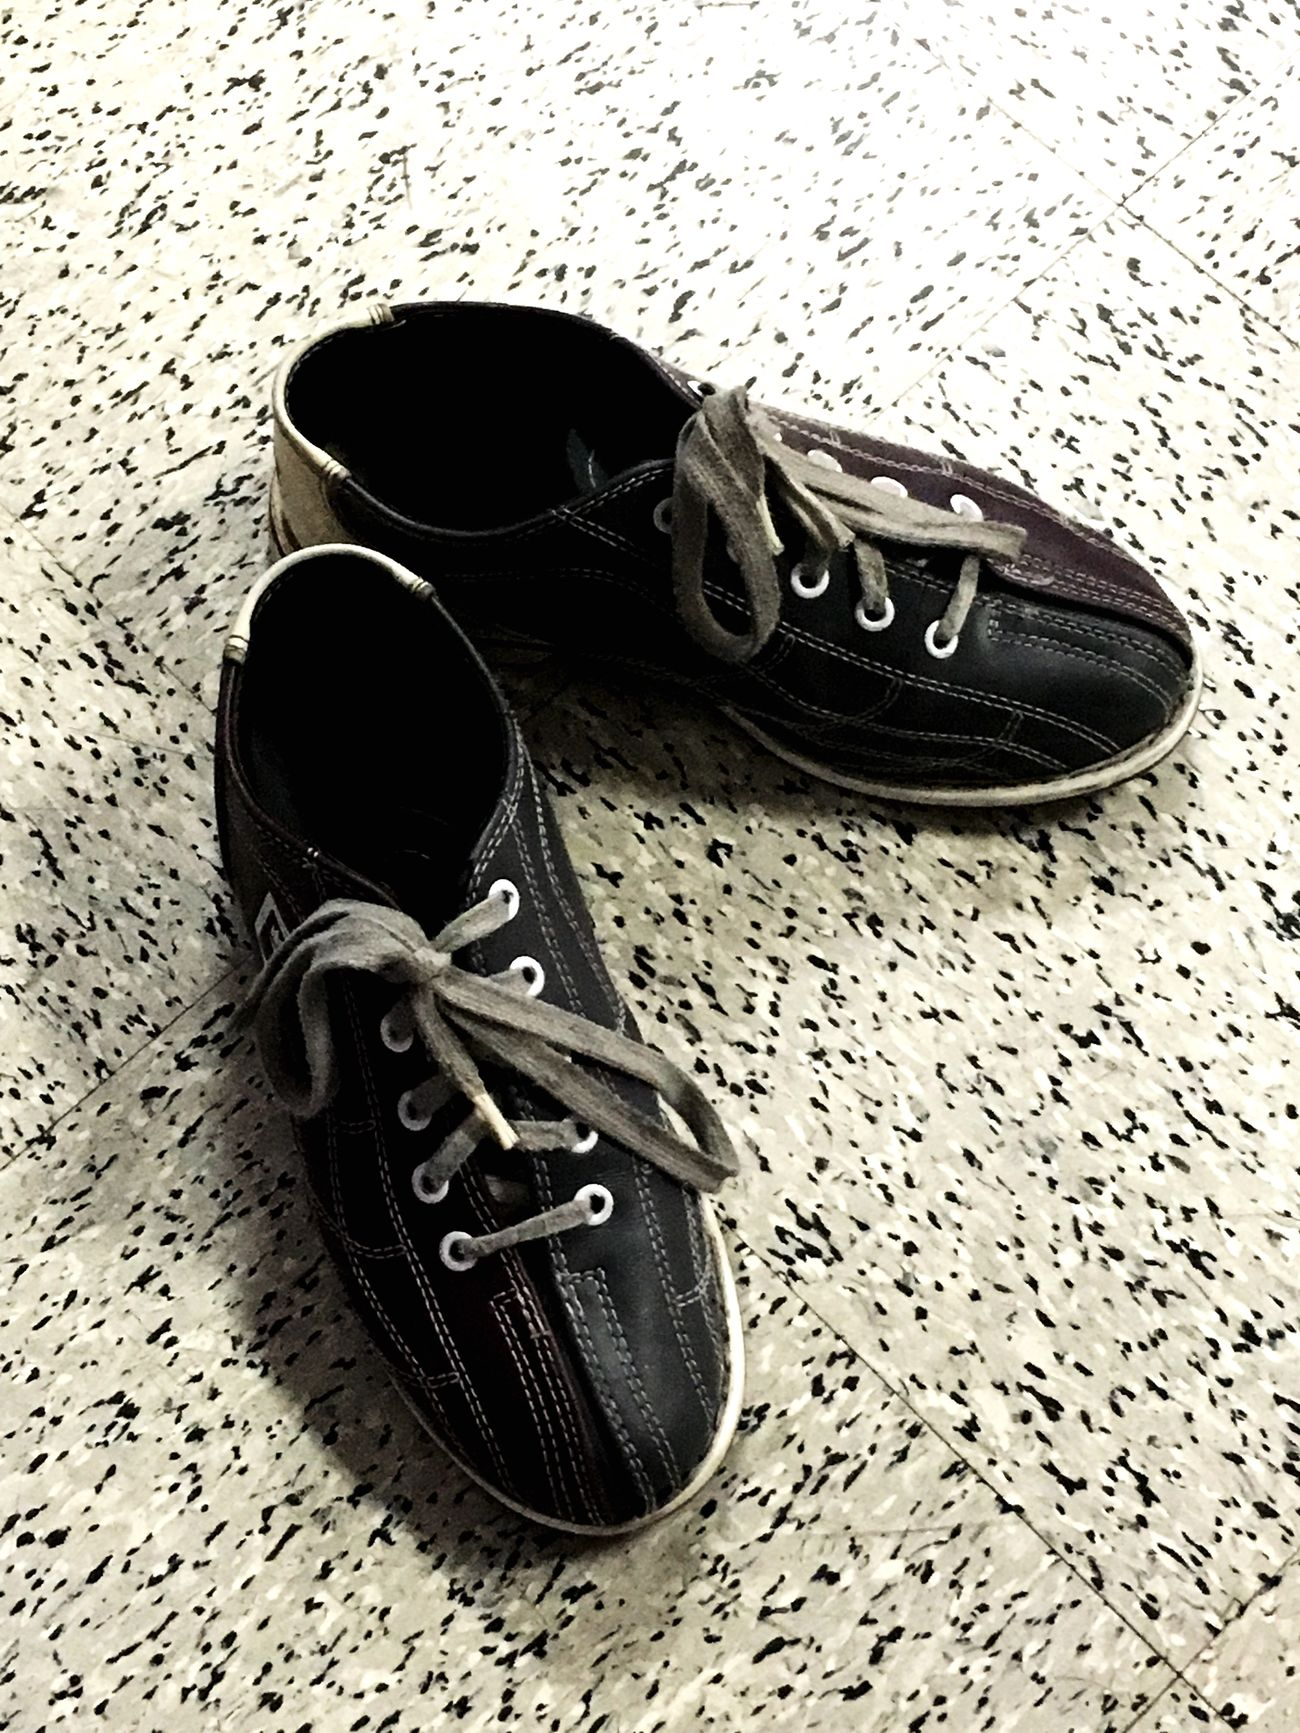 Shoe Pair Fashion Menswear Close-up No People Day Canvas Shoe Indoors  Having A Good Time Having Fun Bowling Bowling Shoes